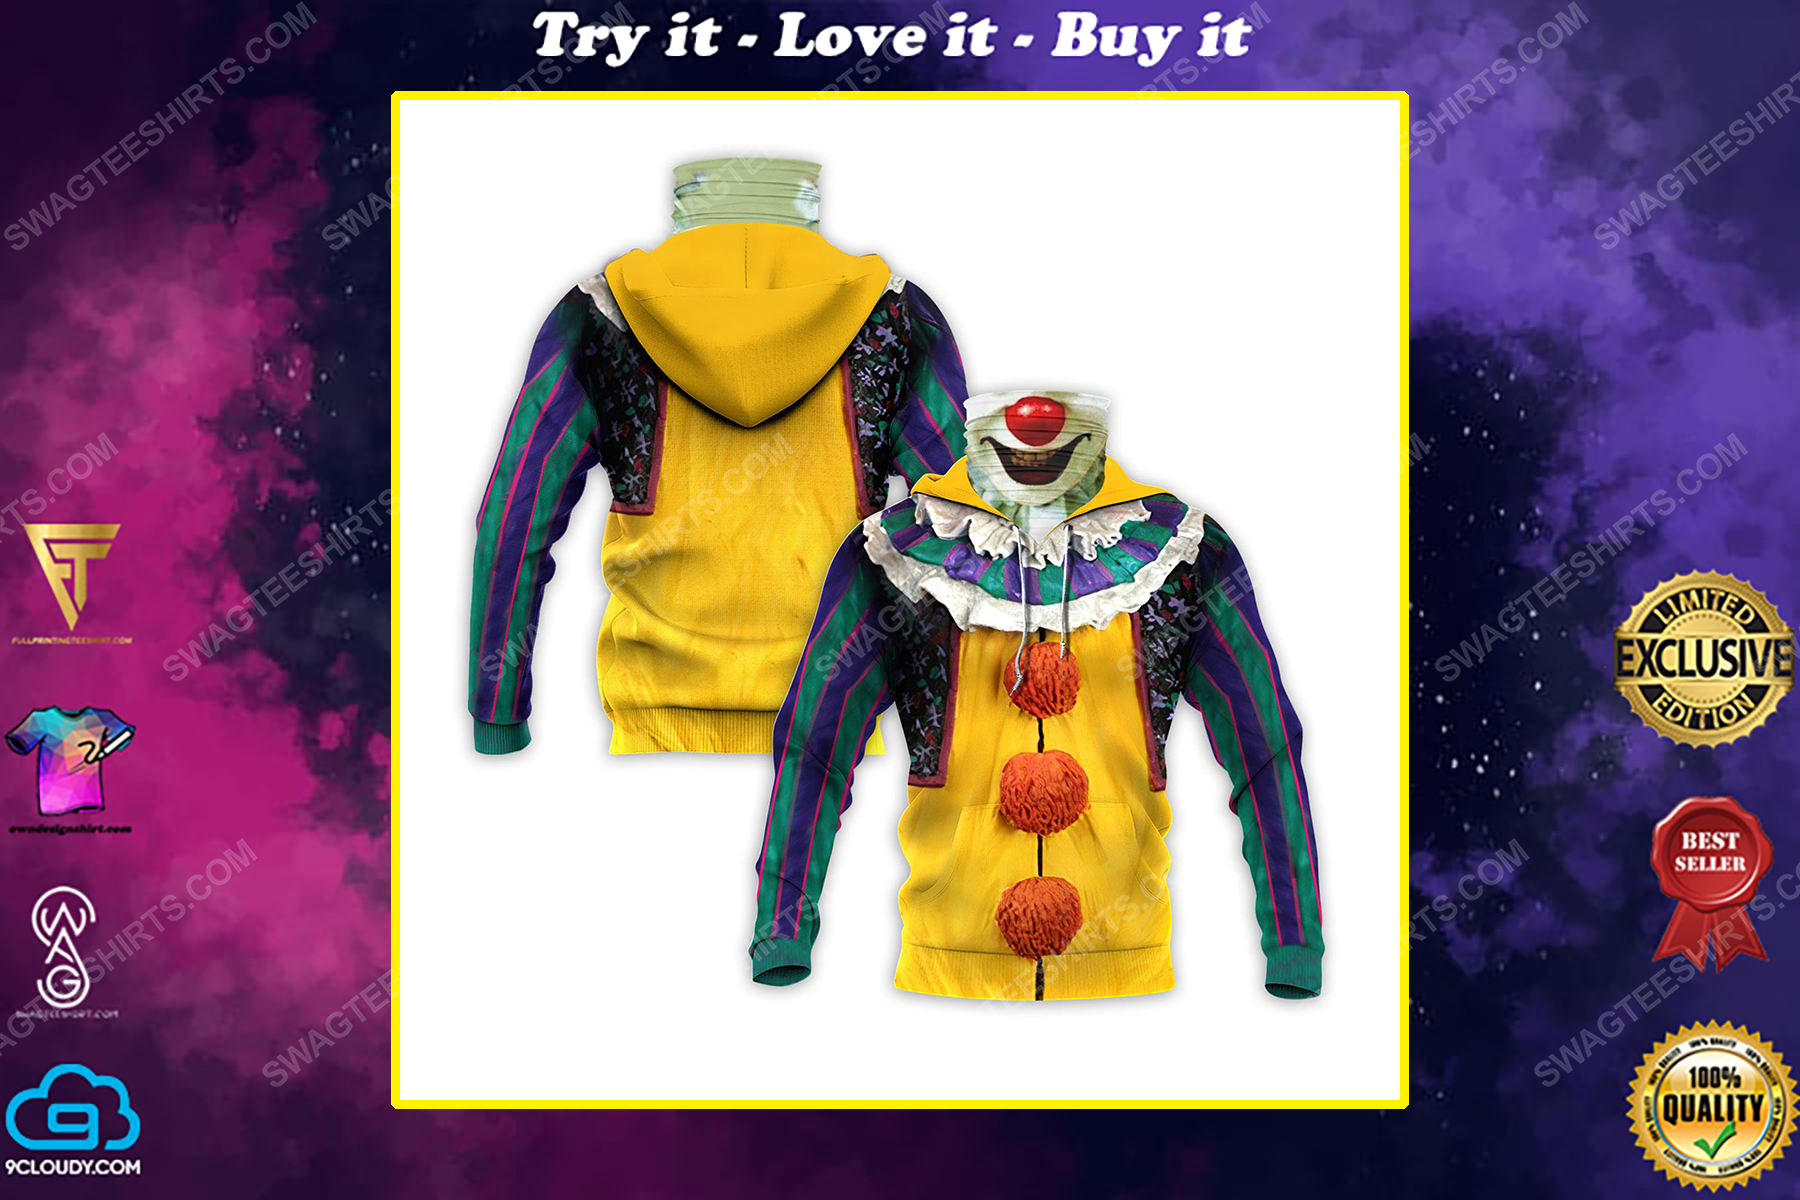 Pennywise the dancing clown for halloween full print mask hoodie